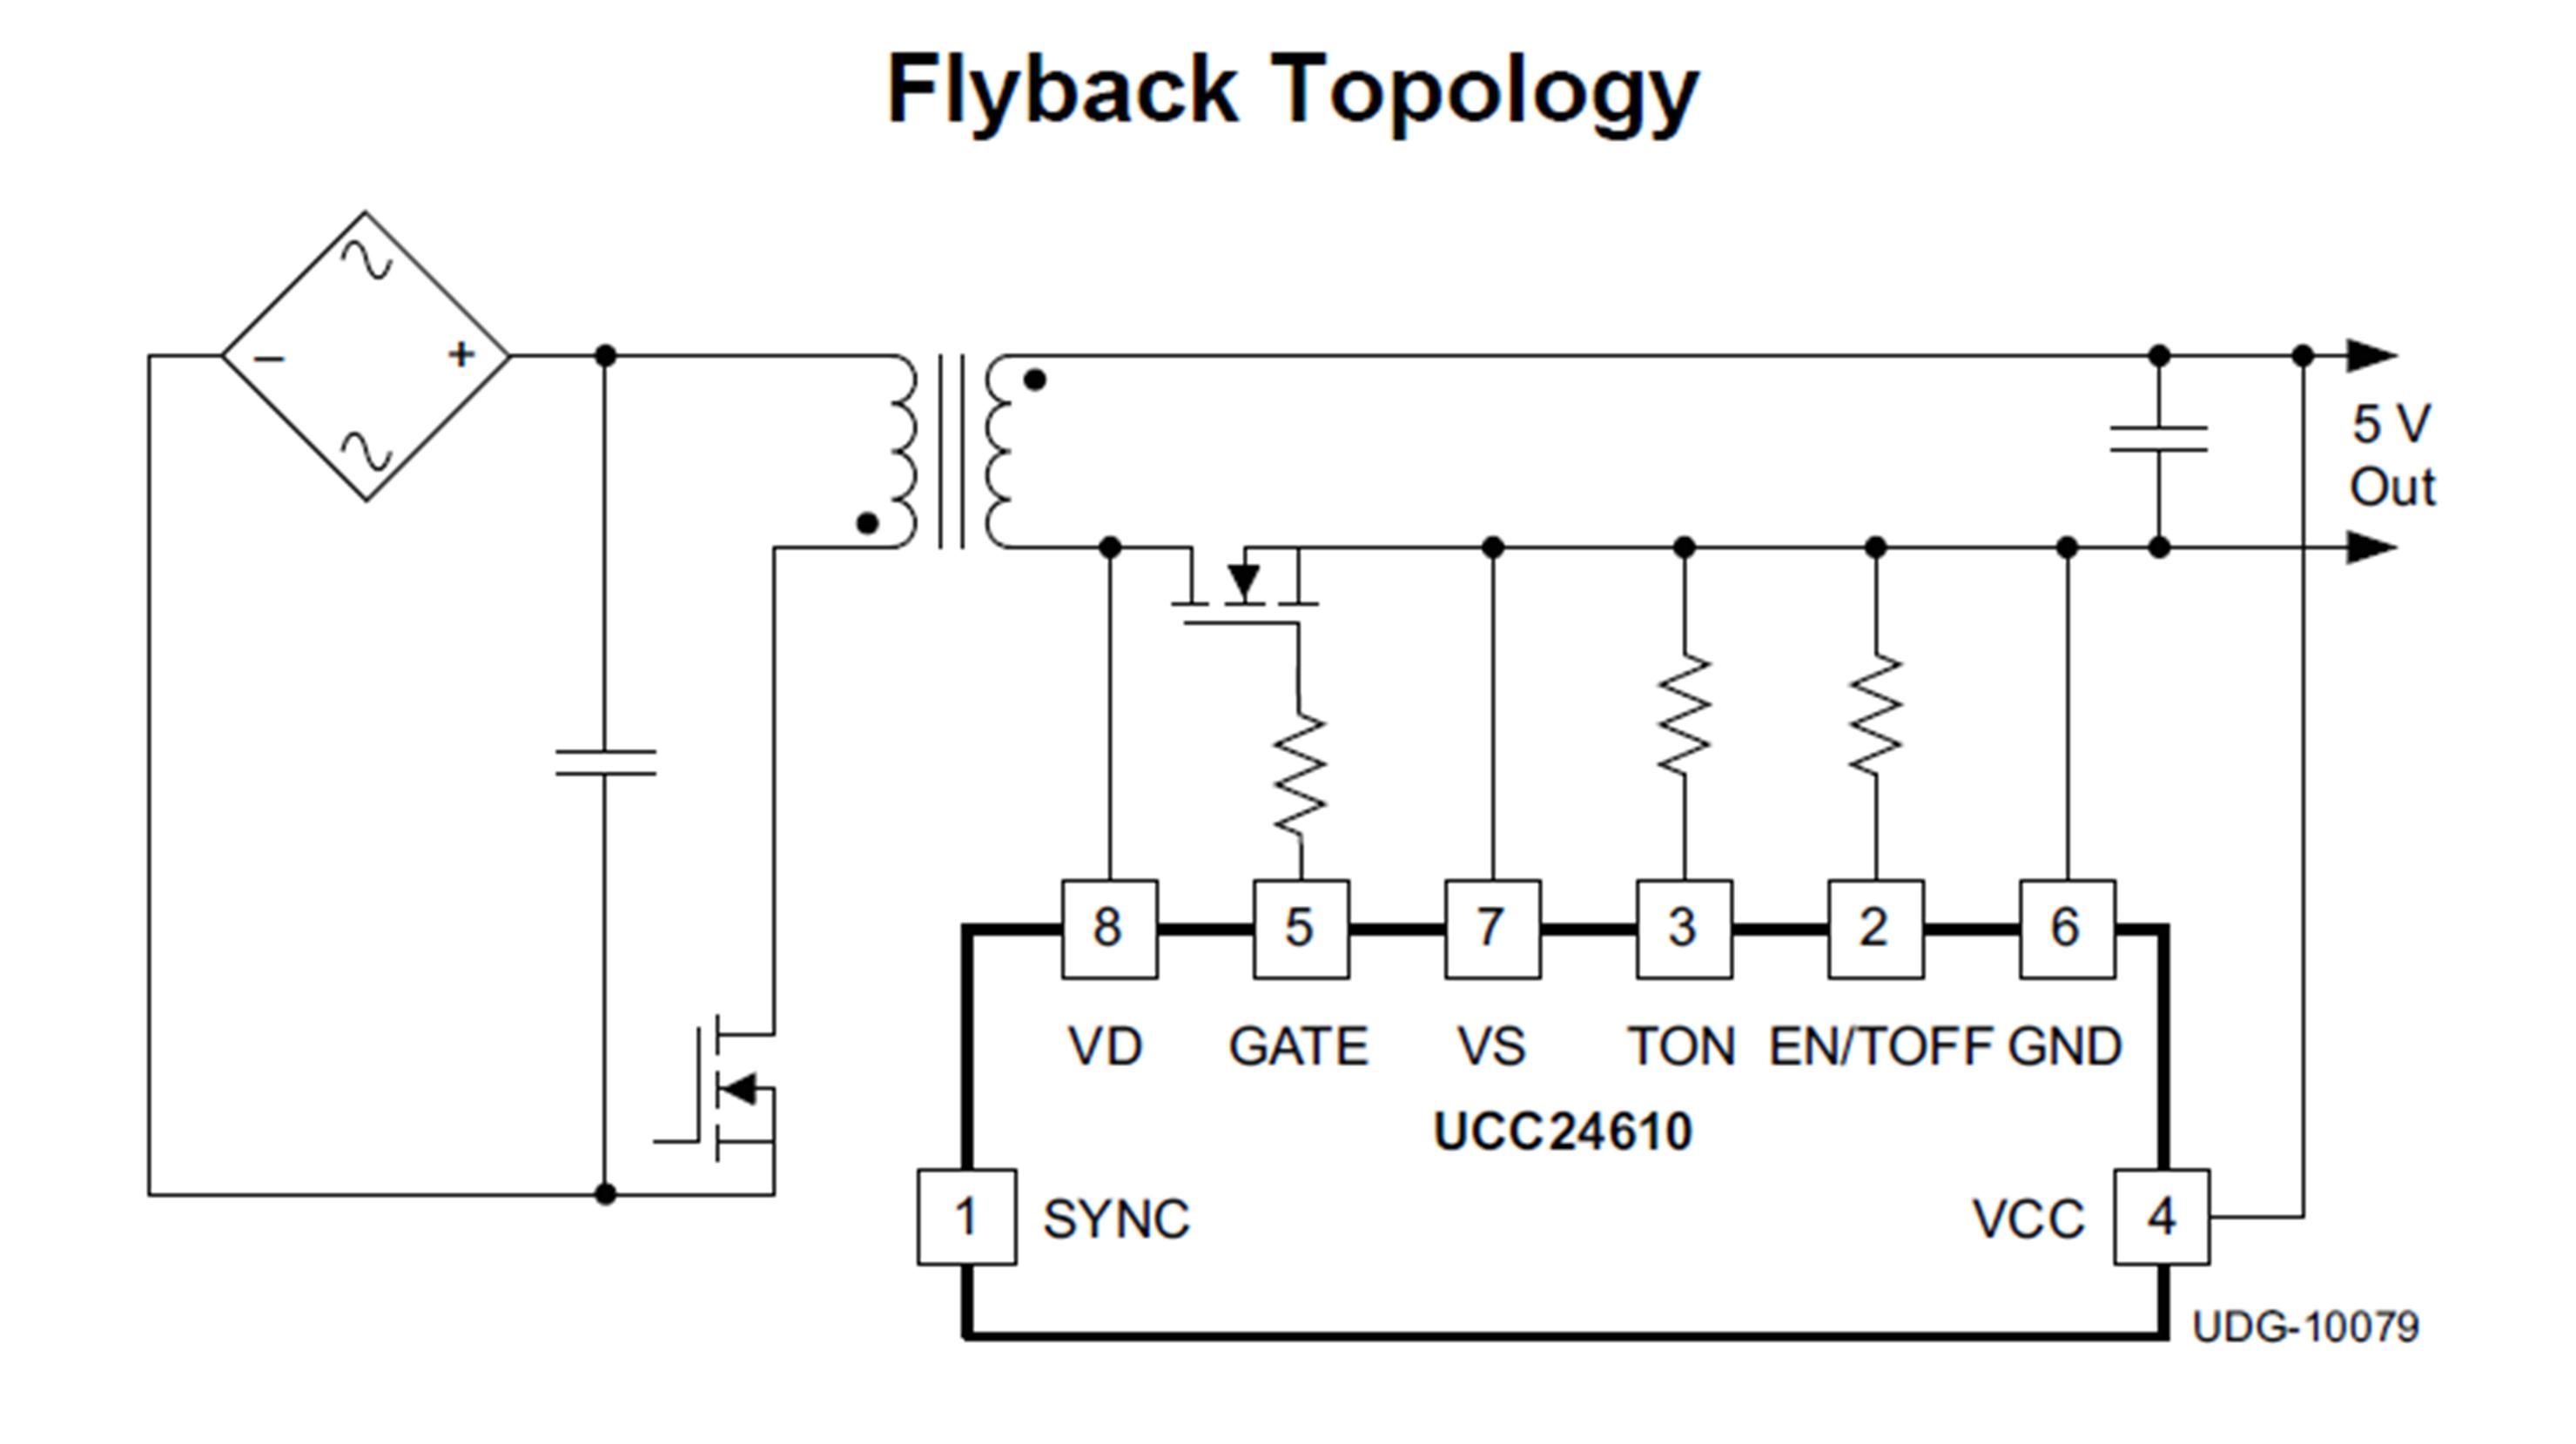 Smps Switched Mode Power Supply besides 60 Watt Switching Power Supply together with How Does This Mosquito Zapper Circuit Work together with Circuit Controller further Build 12v 50w Switching Regulator. on flyback converter circuit diagram